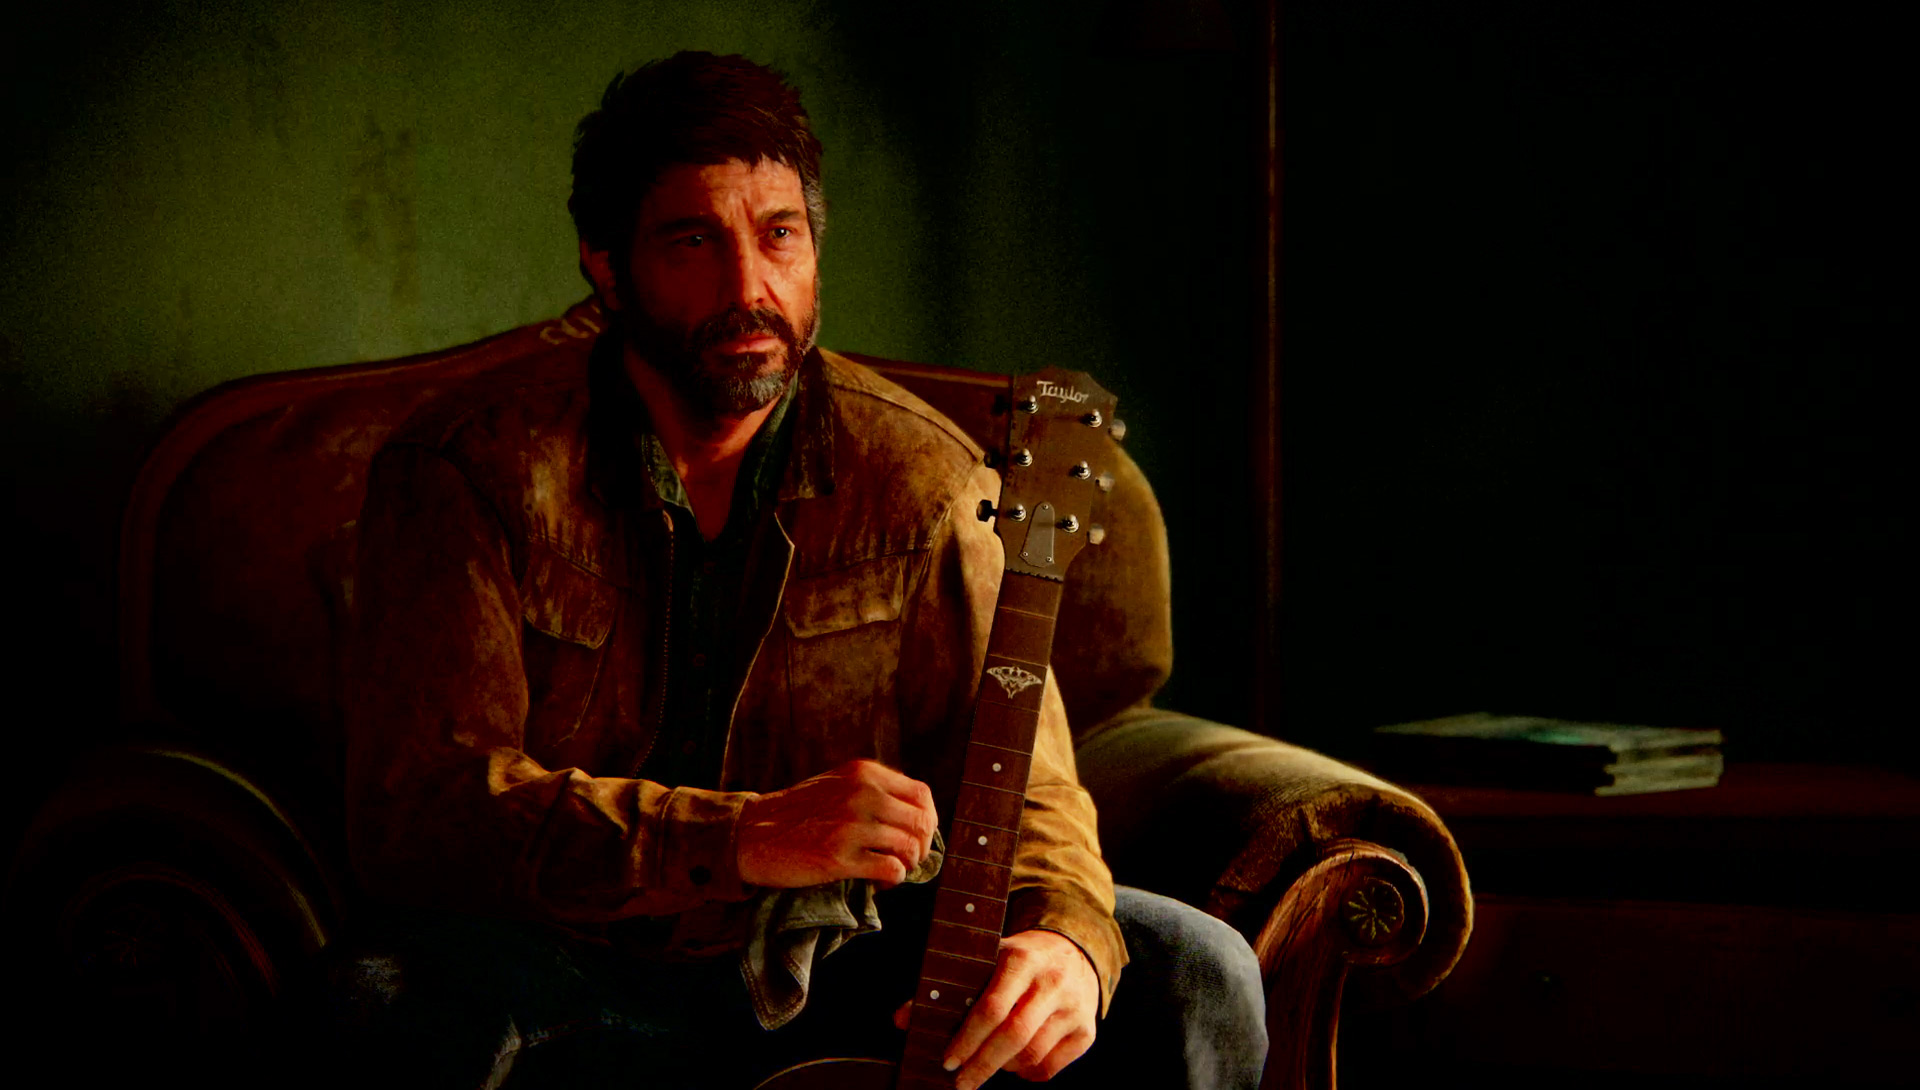 The Last of Us Part II Gameplay Footage: The First 15 Minutes